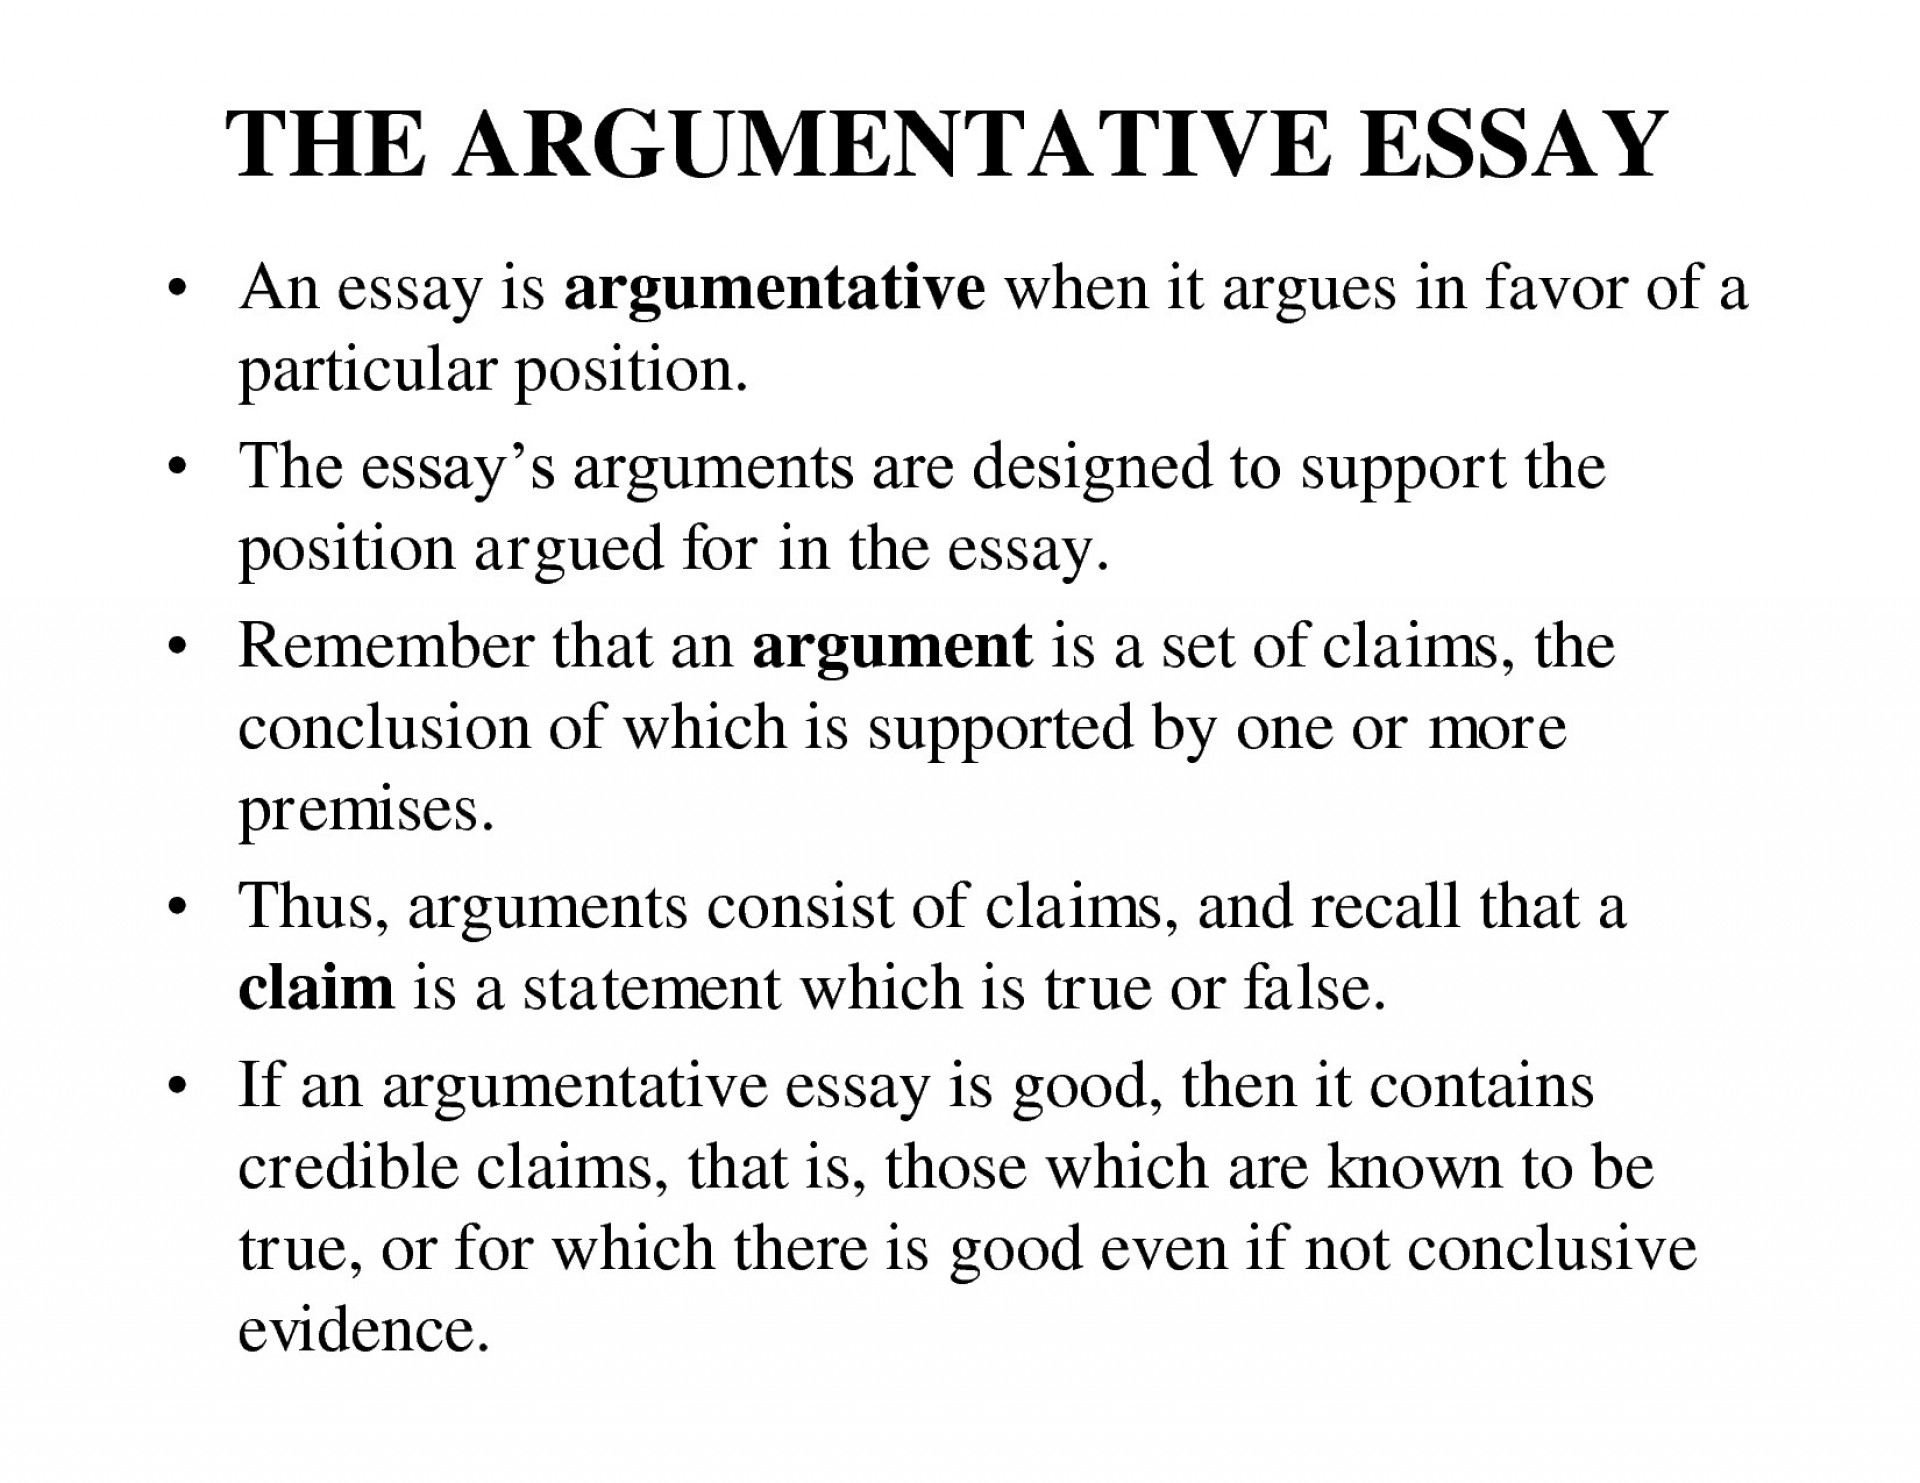 006 Argumentative Essay Conclusion Example World Of How To Write Good Concluding Paragraph For Persuasive Gse Bookbinder Co Rega Examples Argument Sentence Ways Conclude Wonderful An End Without Saying In 1920